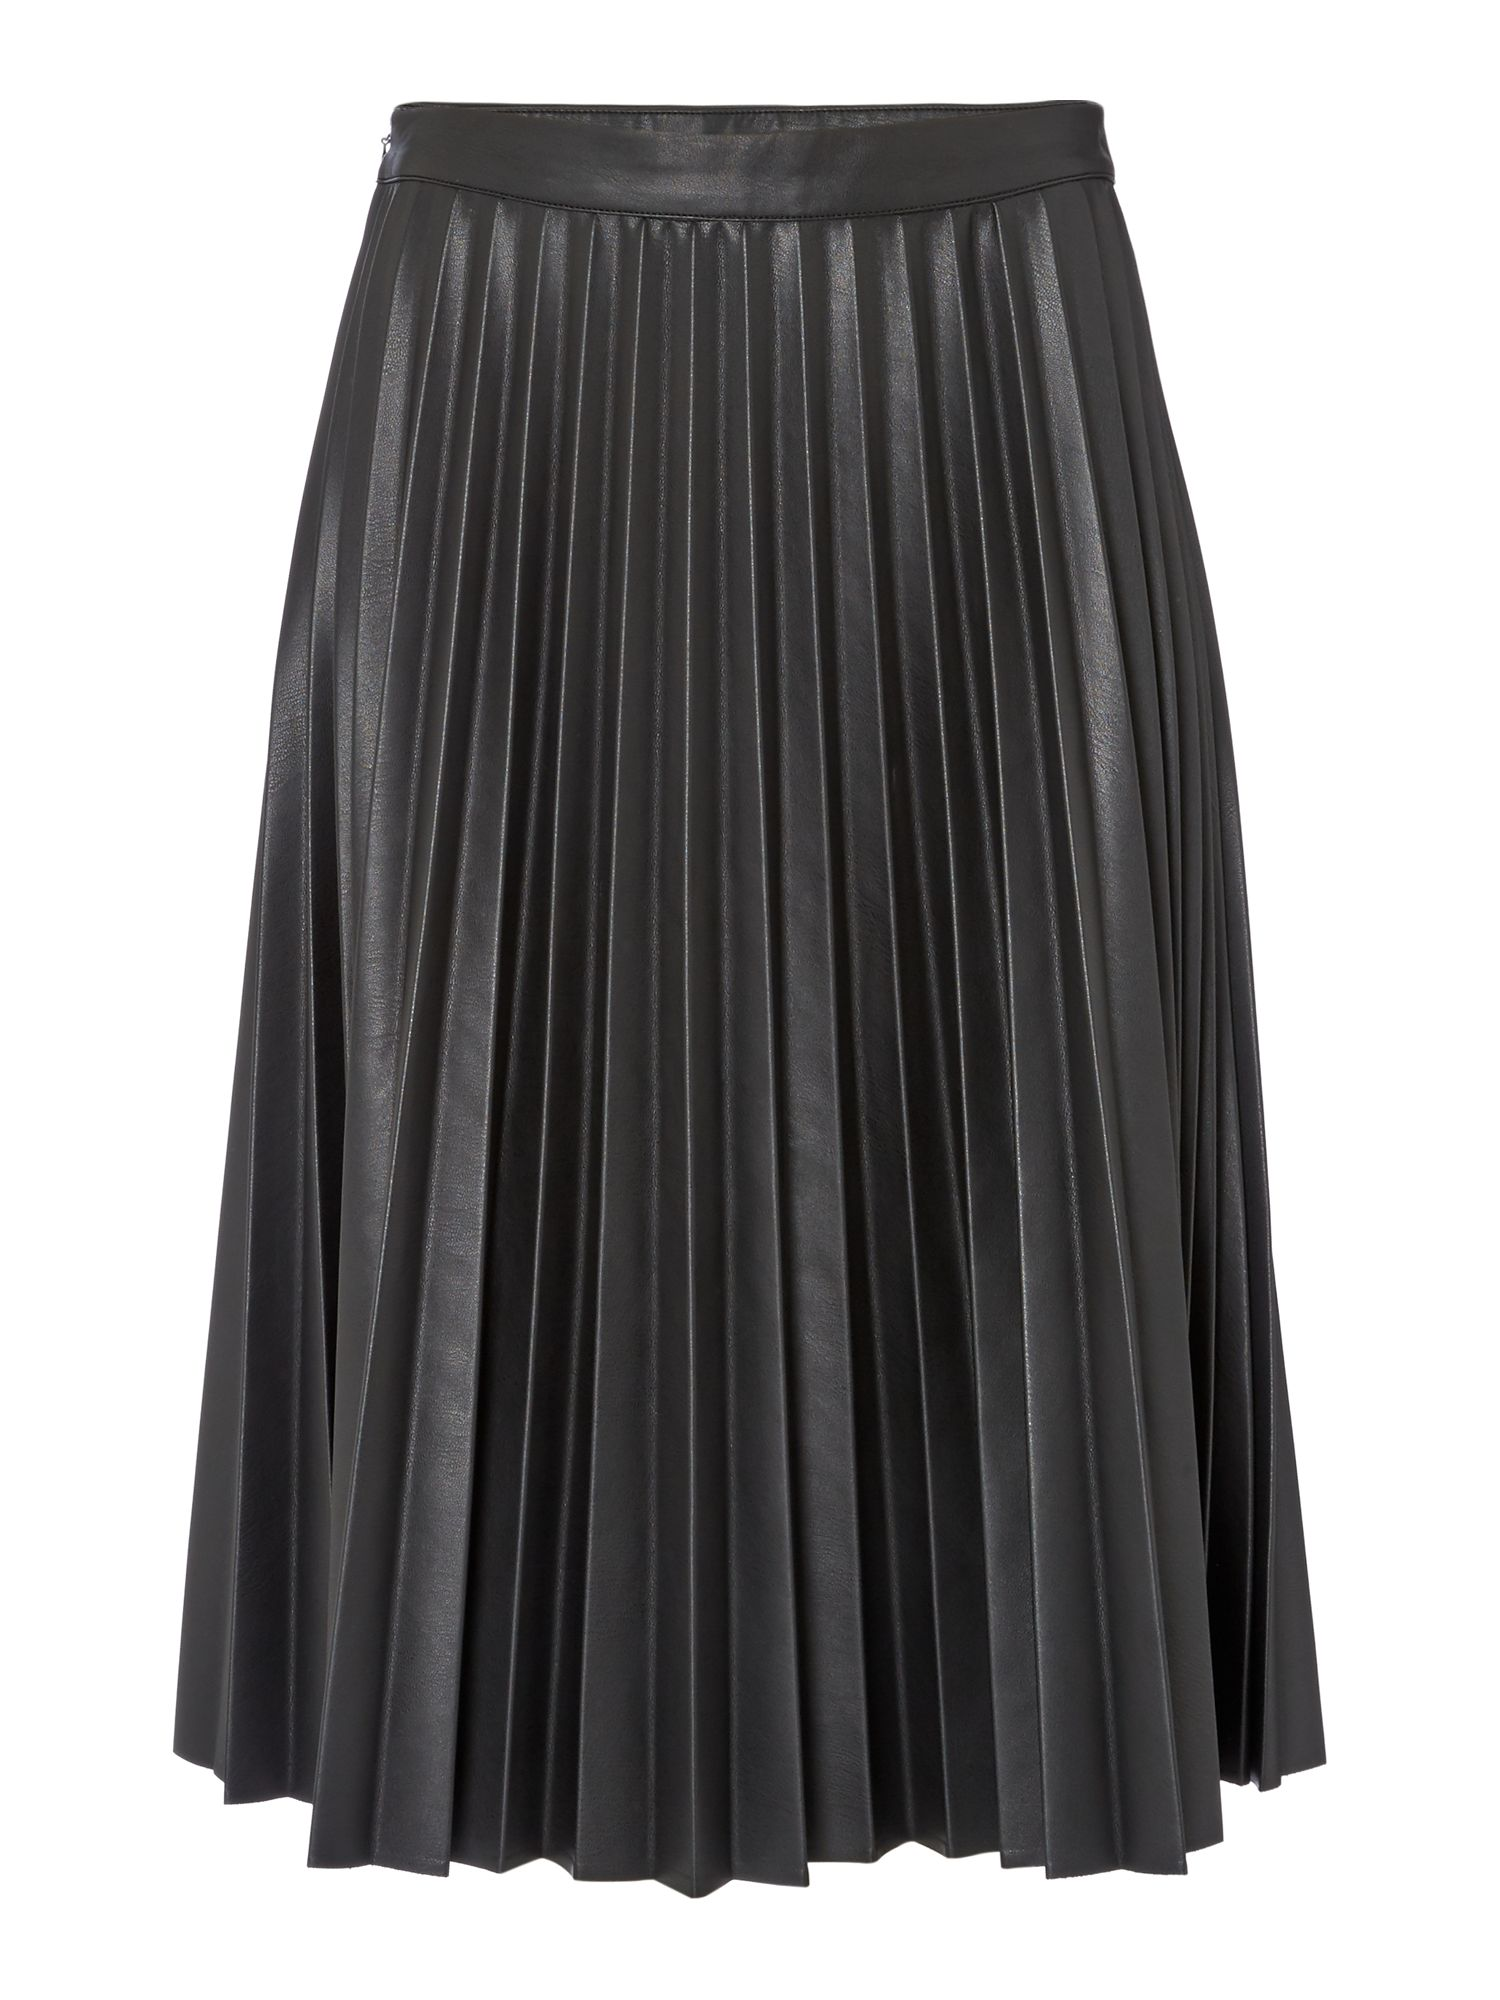 Biba Pleated PU Midi Skirt, Black